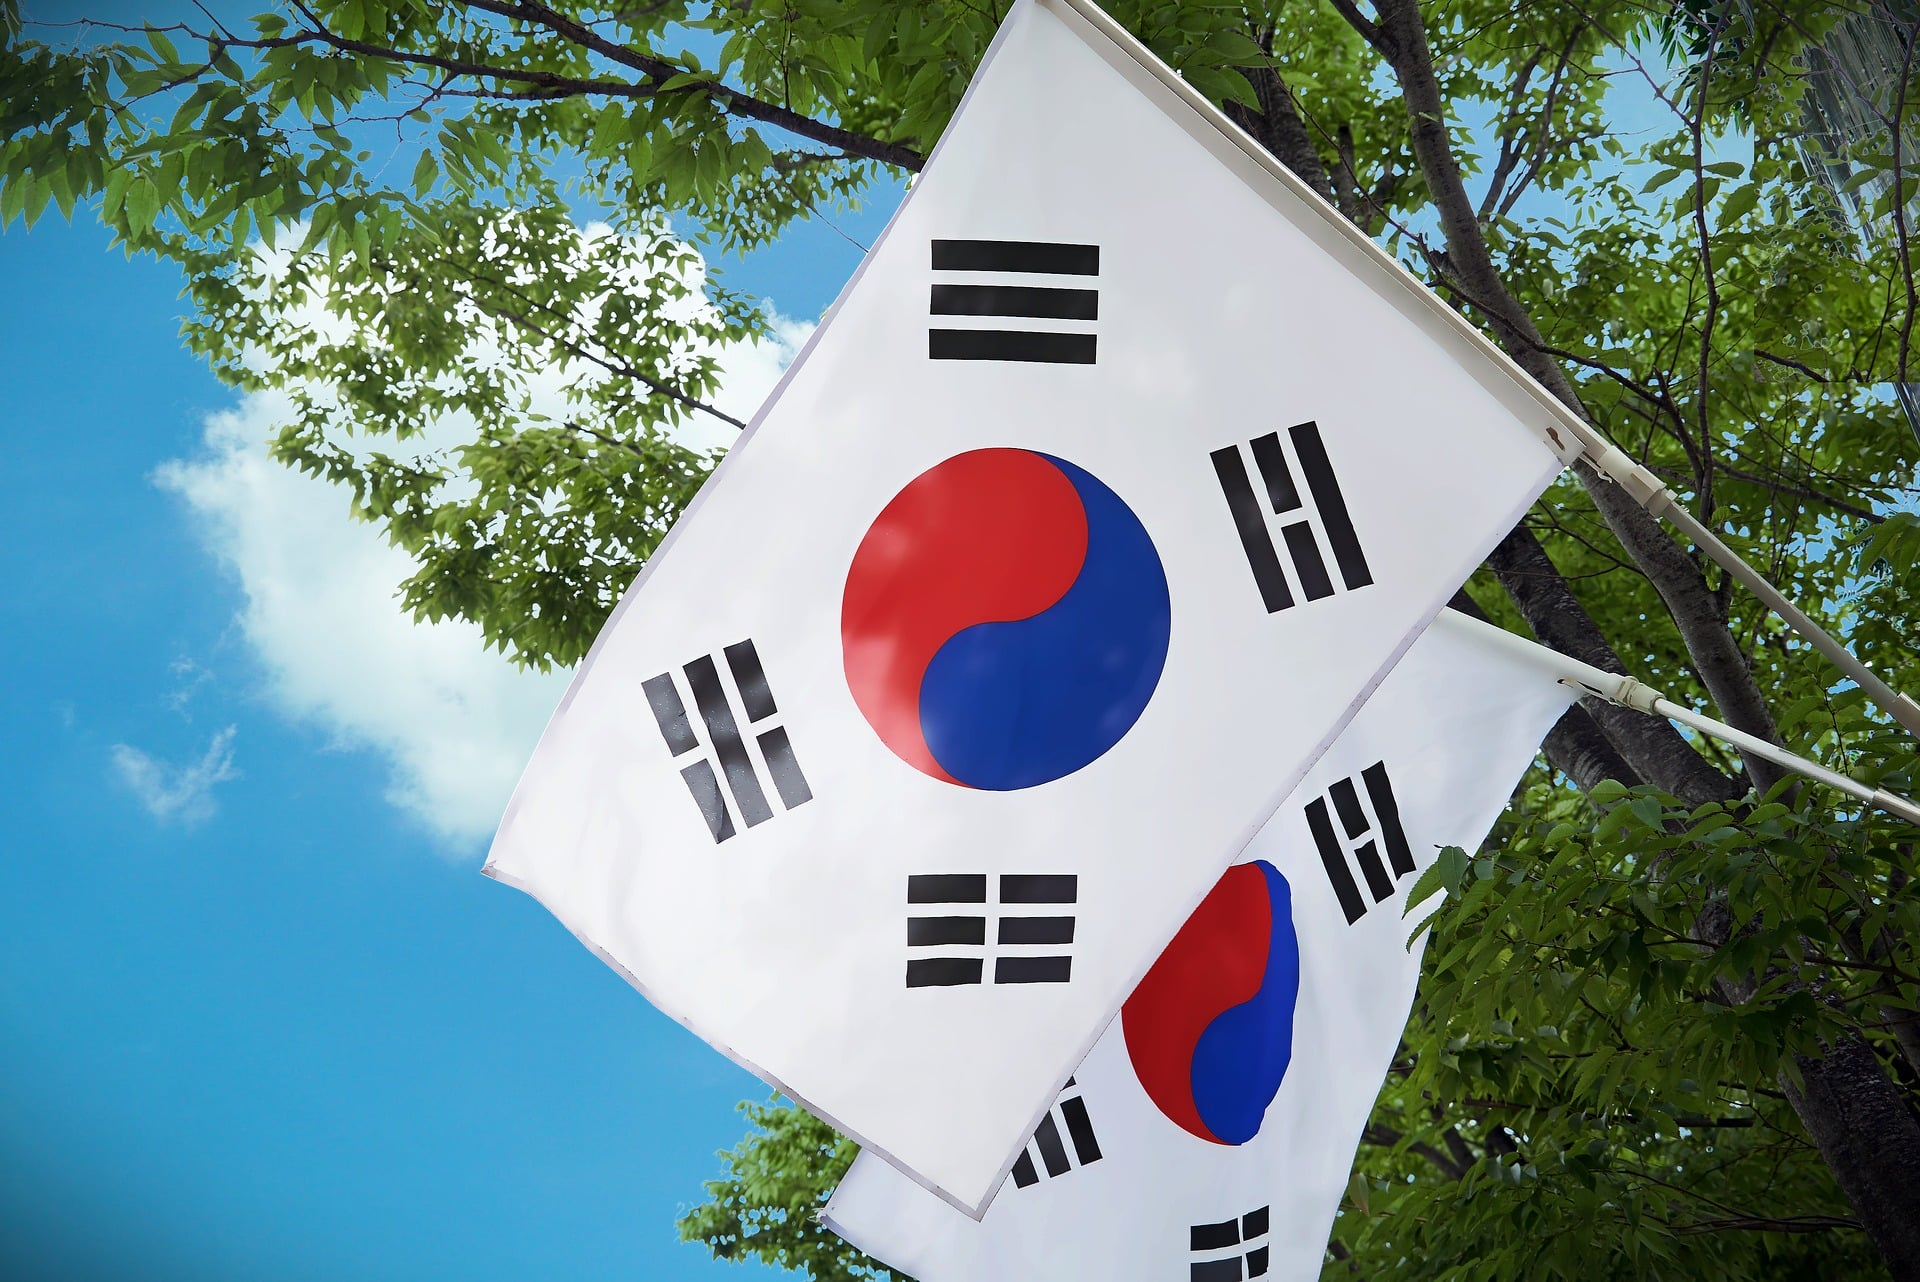 South Korea Insider Trading: Employee Made Profit of 700,000 Won